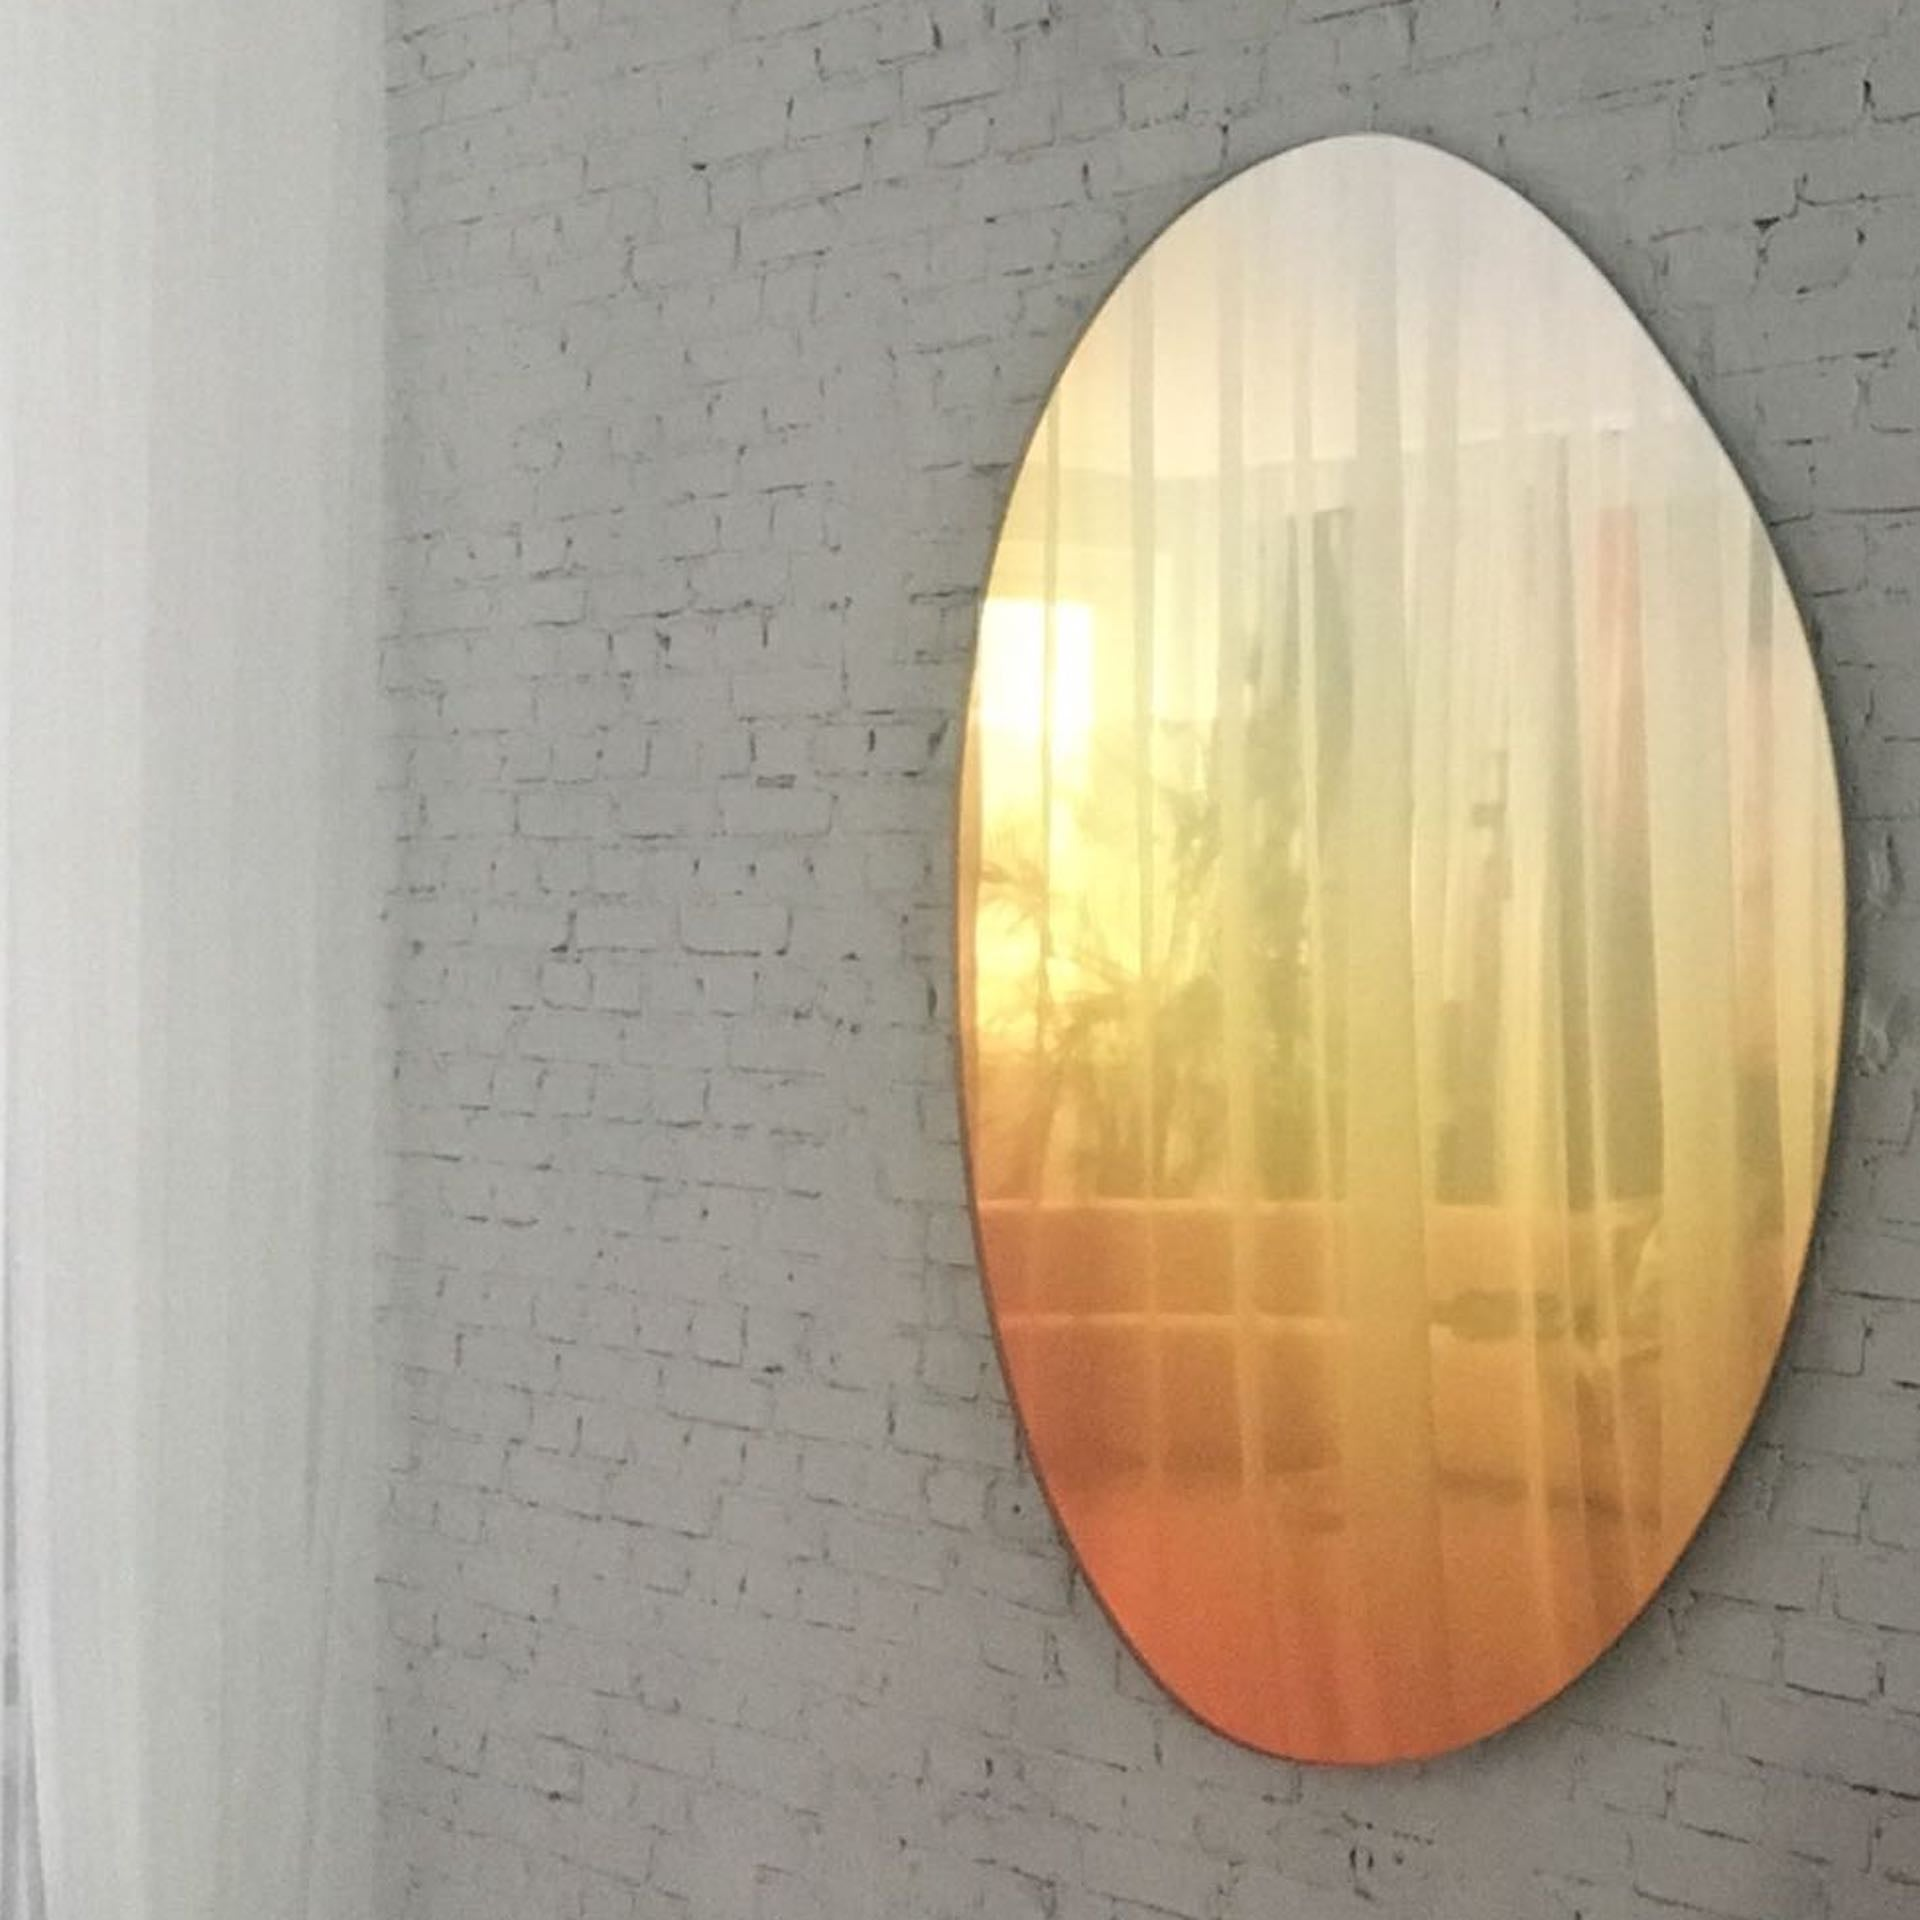 Off Round Hue Mirror by Sabine Marcelis, 2018. Photo © Etage Projects